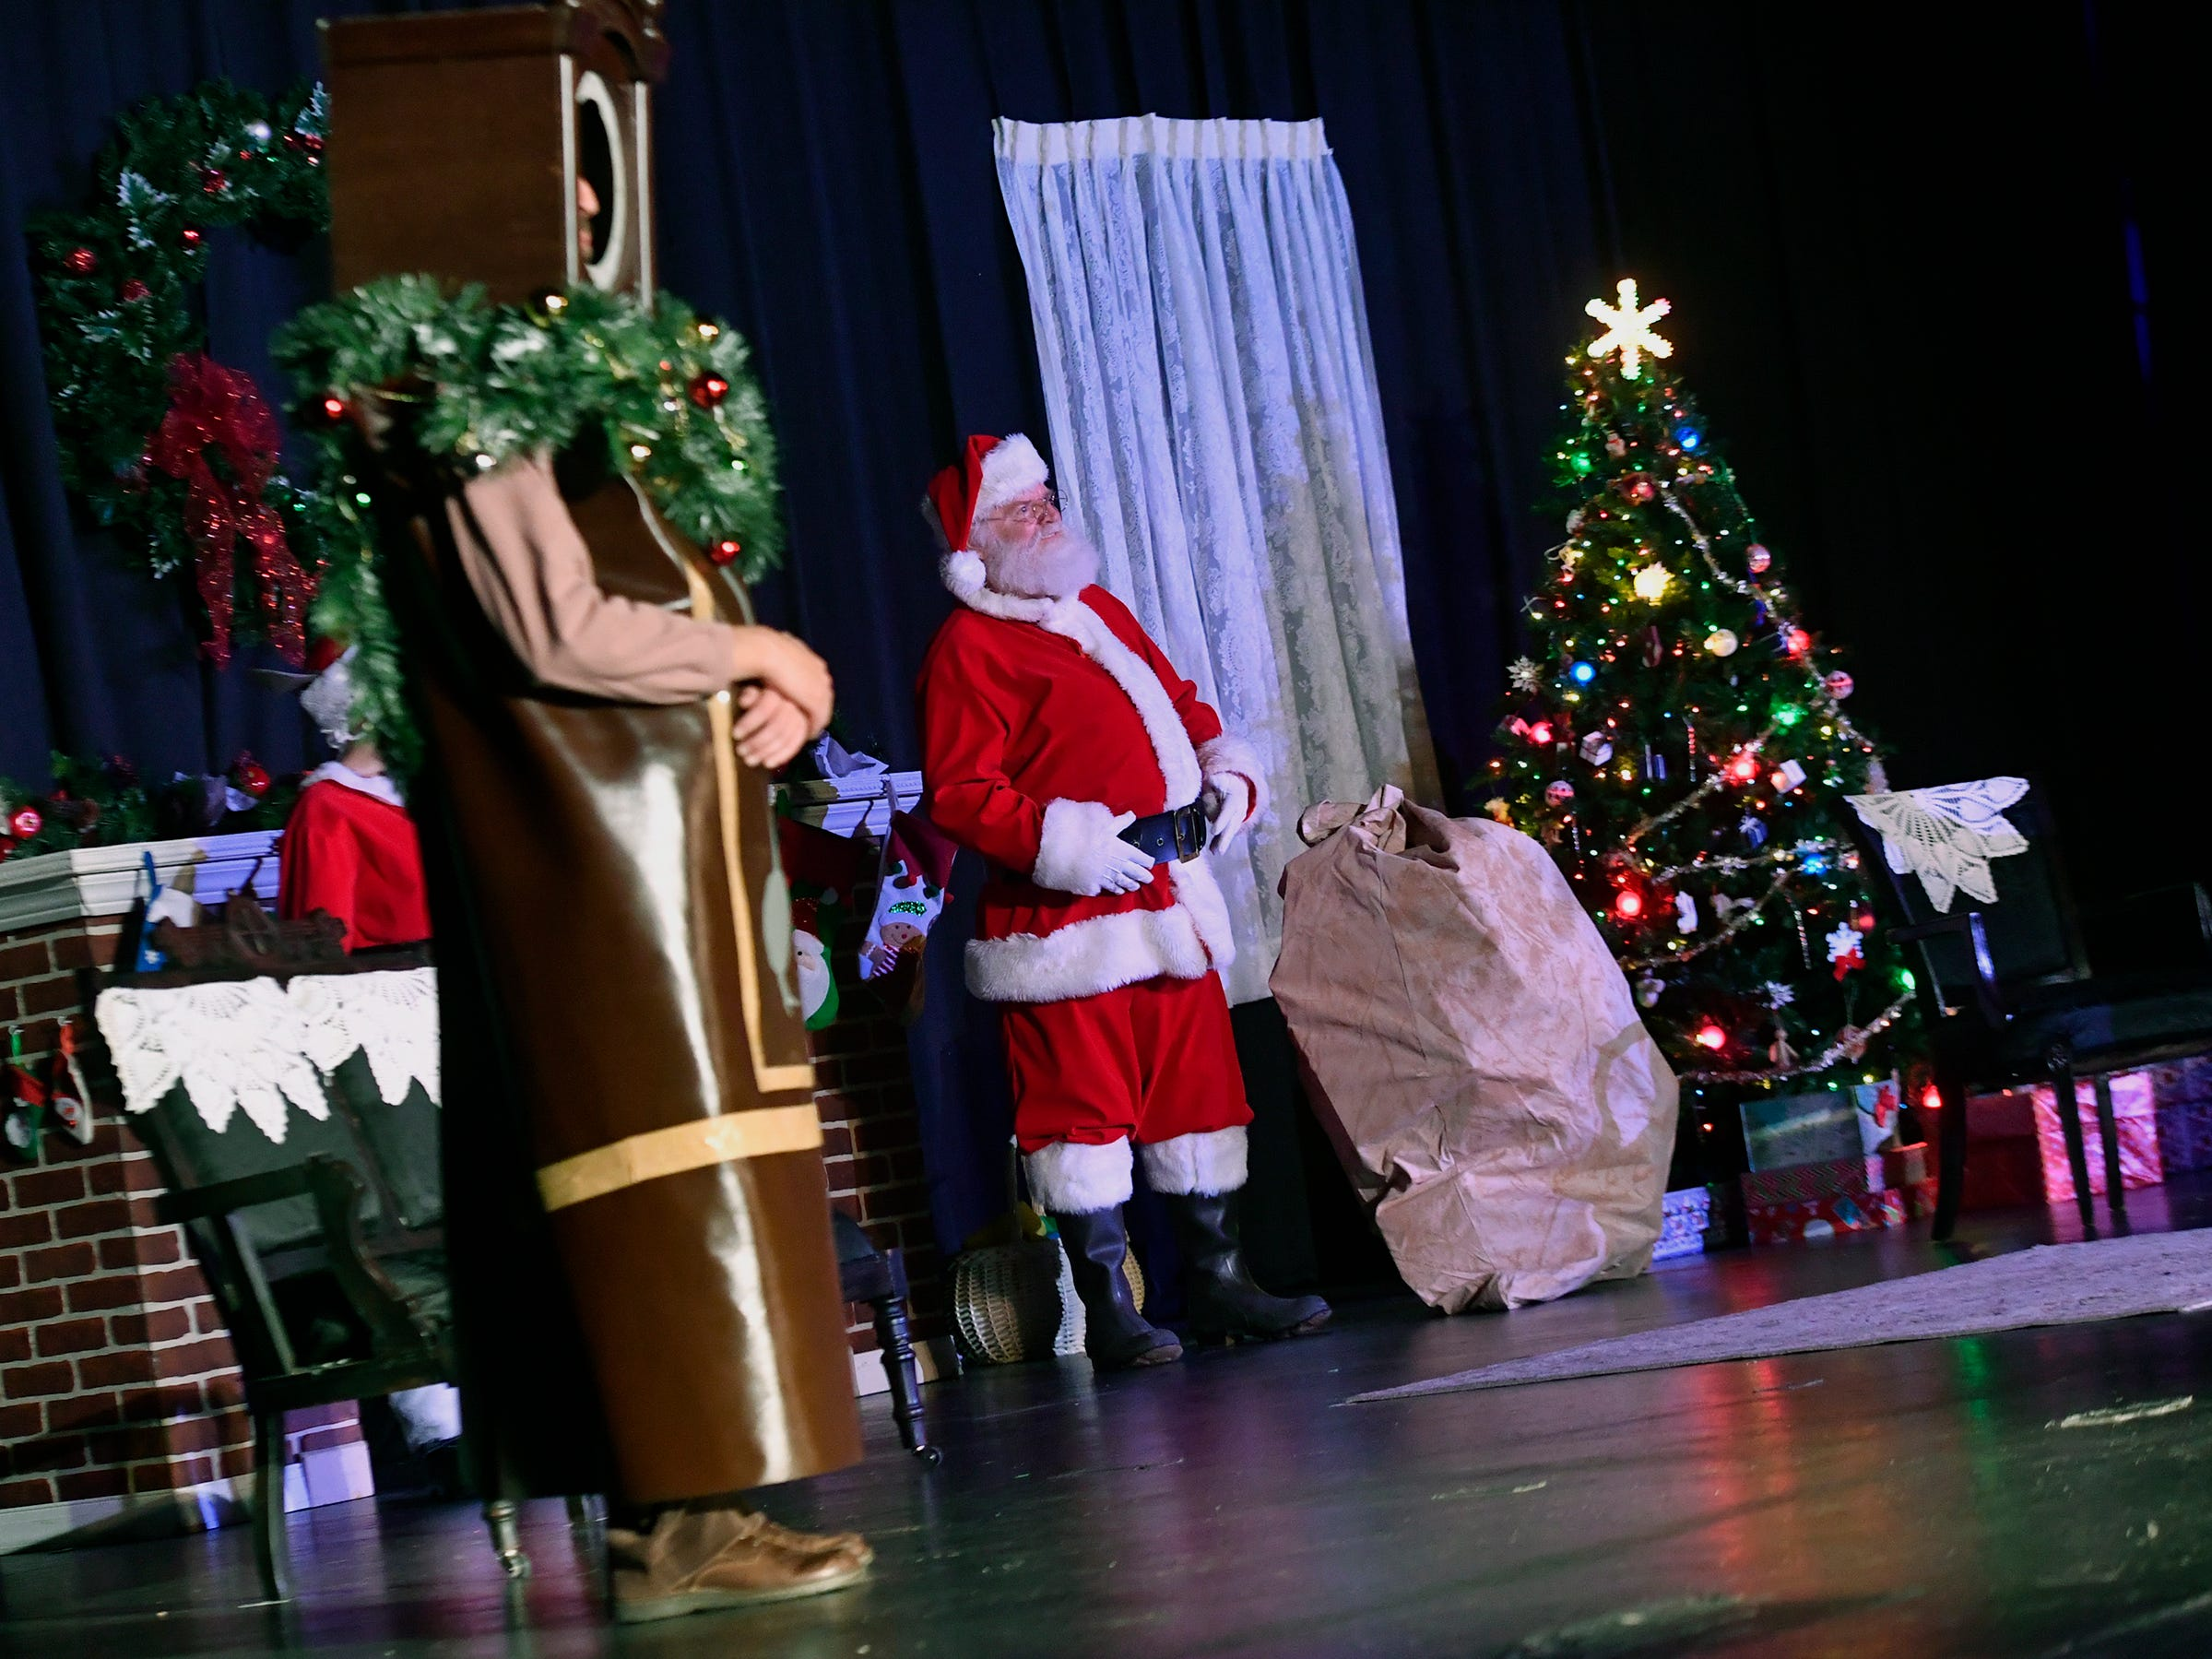 Theater Arts for Everyone is performing The Night Before Christmas this weekend at The York Learning Center. Show times are Dec. 7 & 8 at 7 p.m. and Dec 8 & 9 at 3 p.m.  Tickets are available at the door or through Eventbrite. Thursday, December 6, 2018. John A. Pavoncello photo